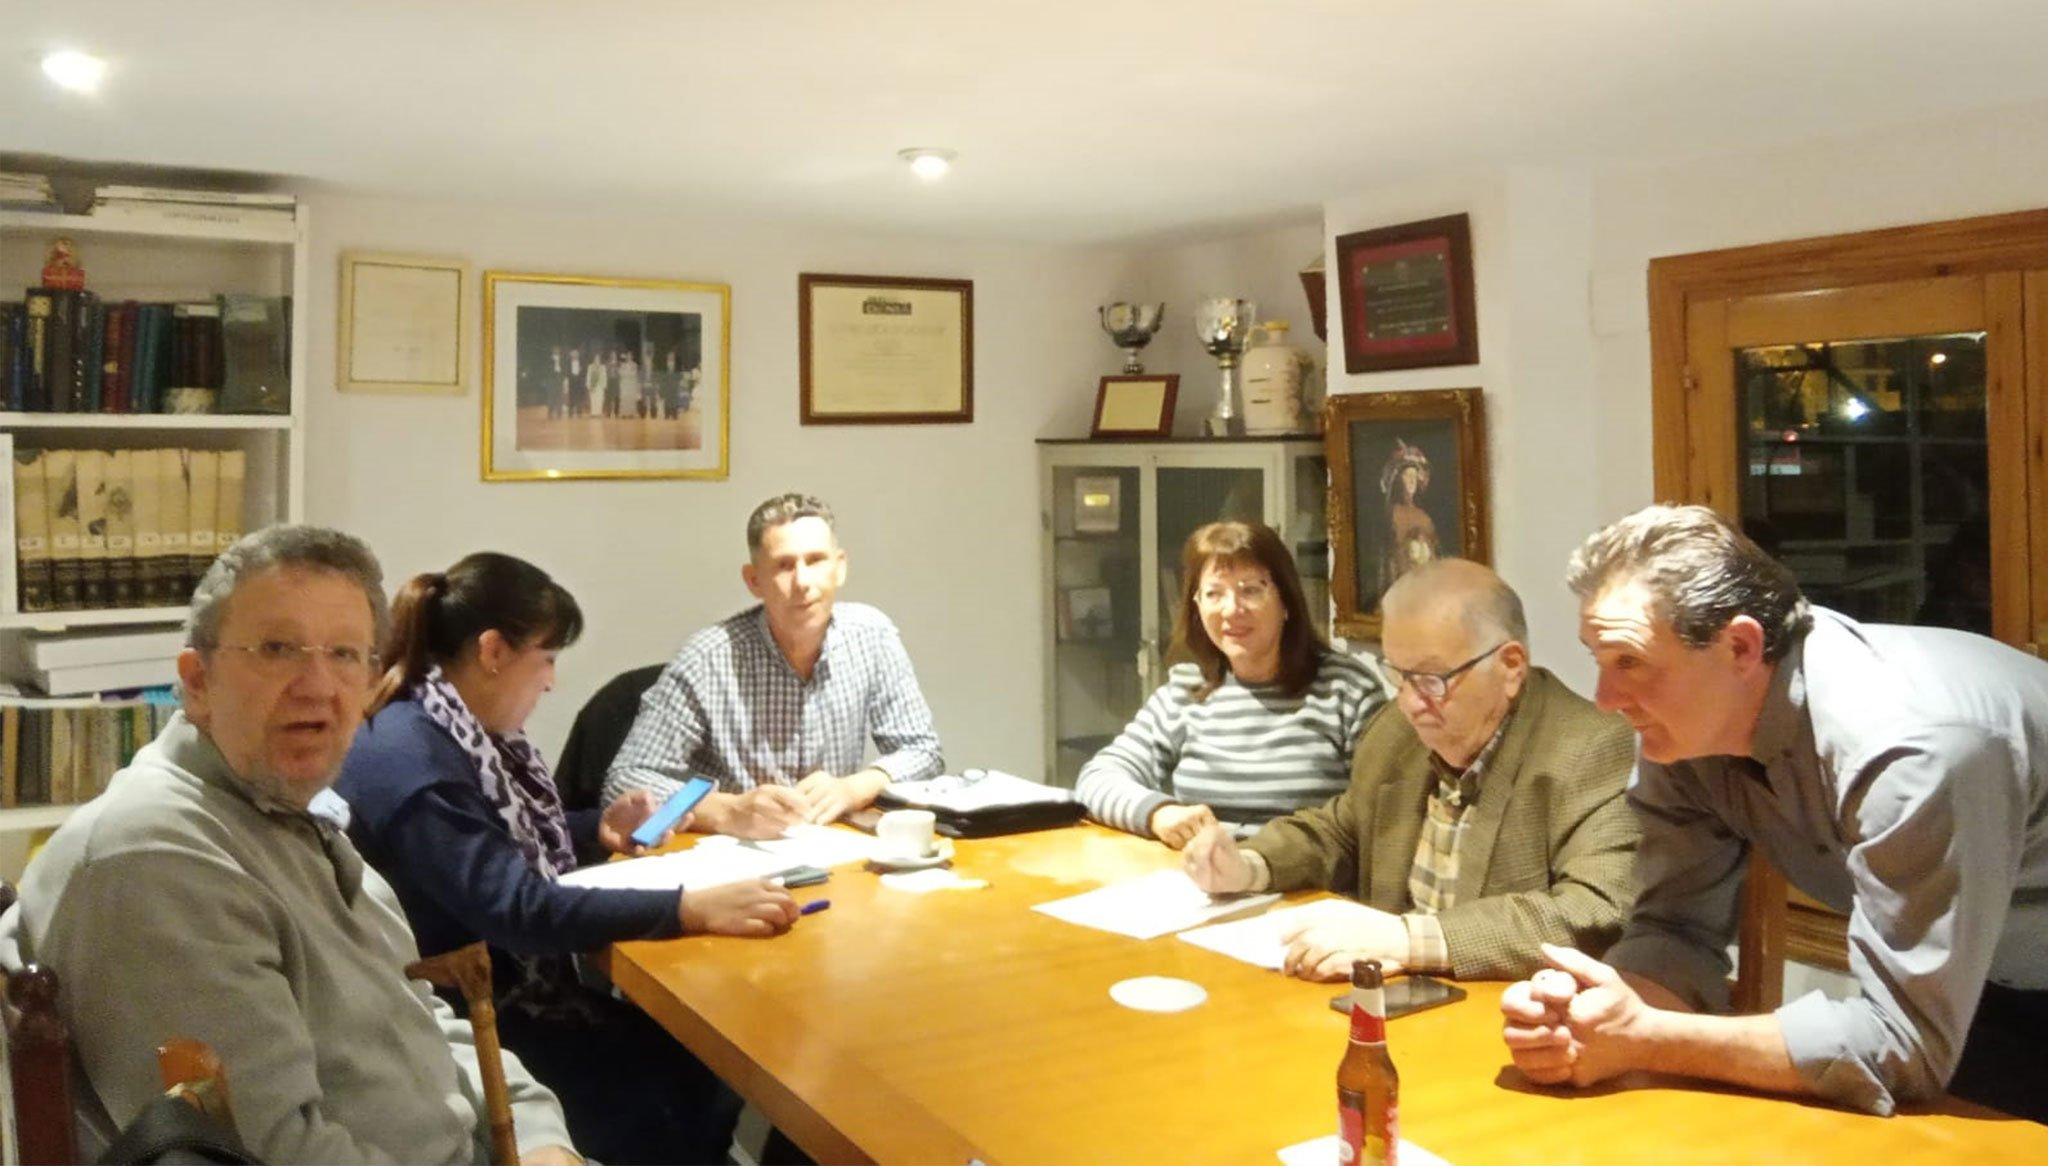 Current board of the Casa de Andalucía: Pedro Ayala, to the left of the photo; Eva Núñez, the president, Pedro González, Loli Cubiles, Tere Gisbert, Pepa Reyes